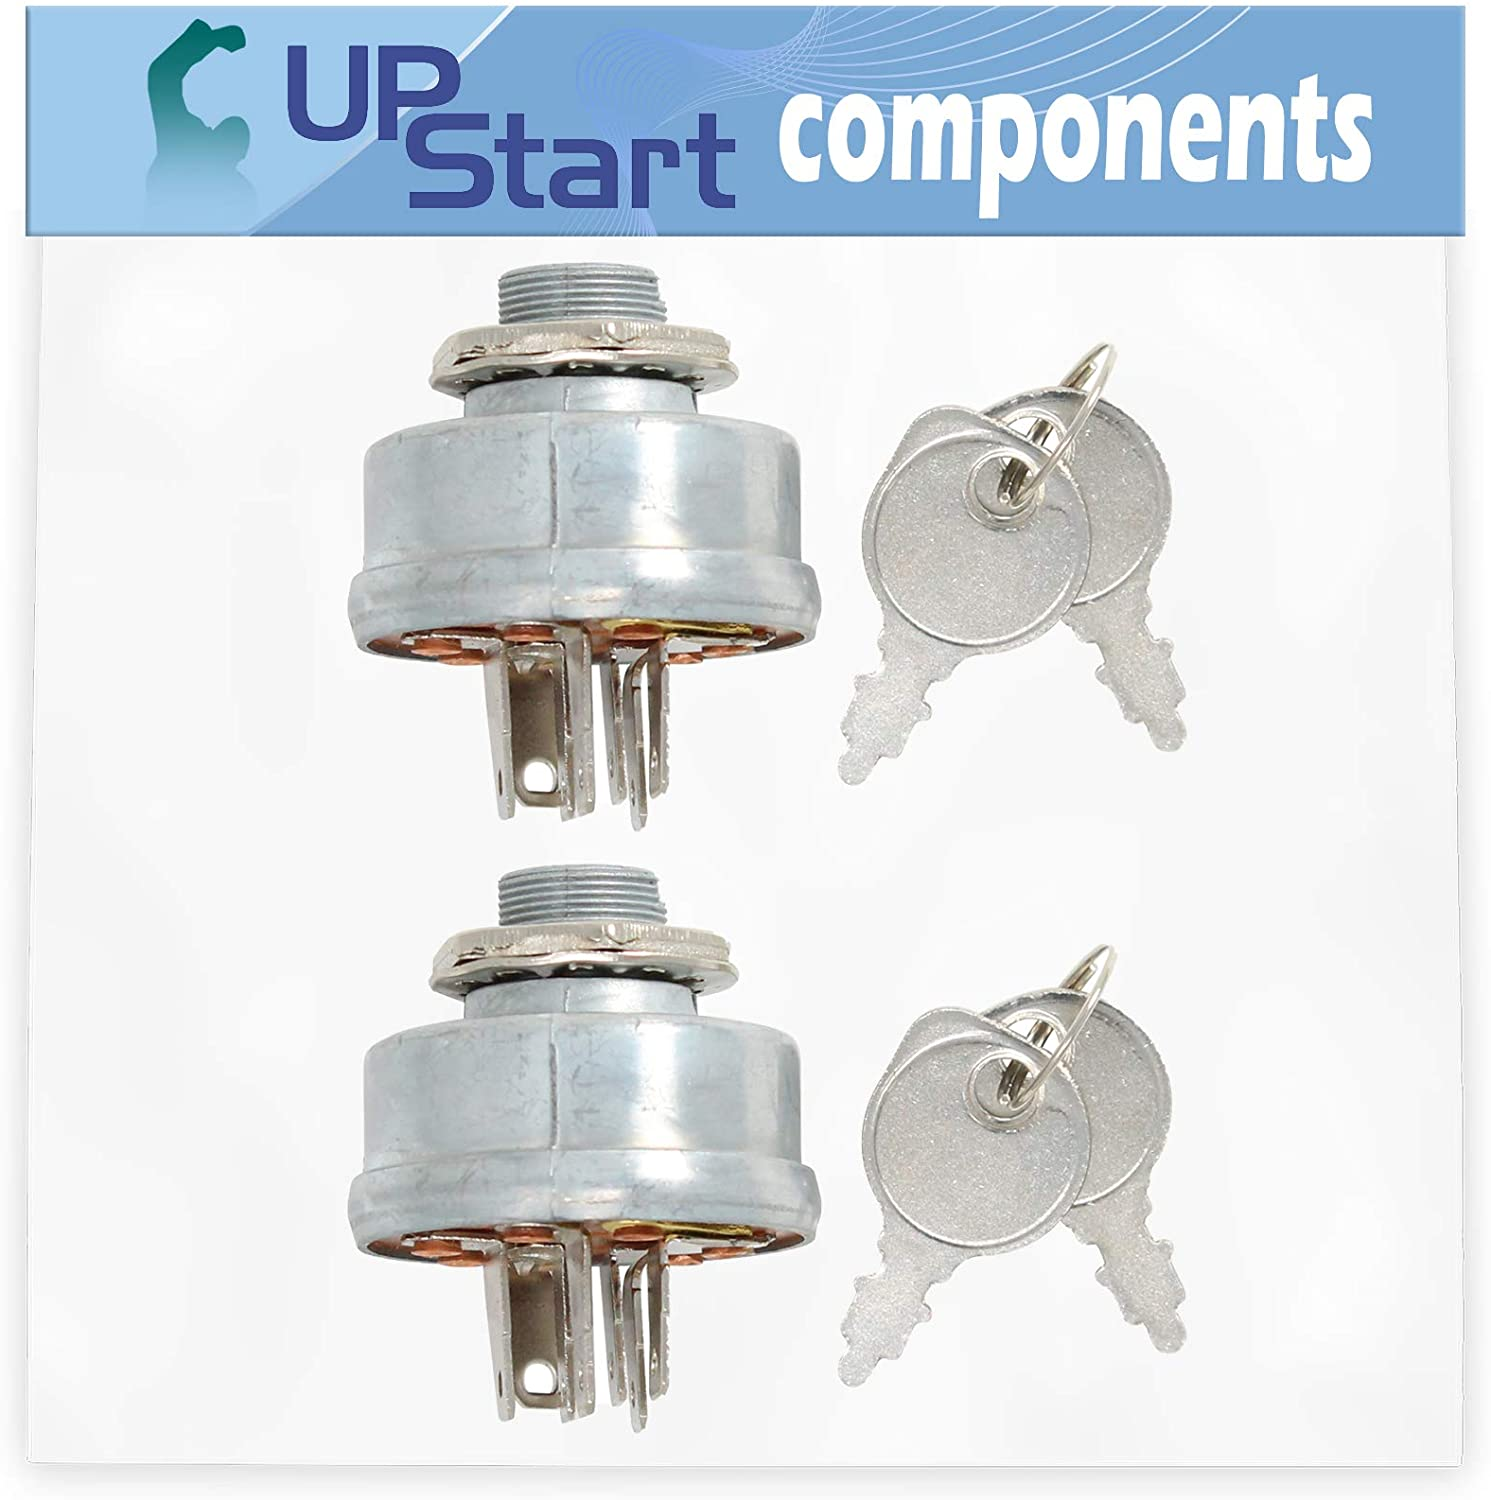 UpStart Components 2-Pack 140301 Ignition Switch Replacement for AYP 8228B89 - Compatible with 532140301 Starter Key Switch